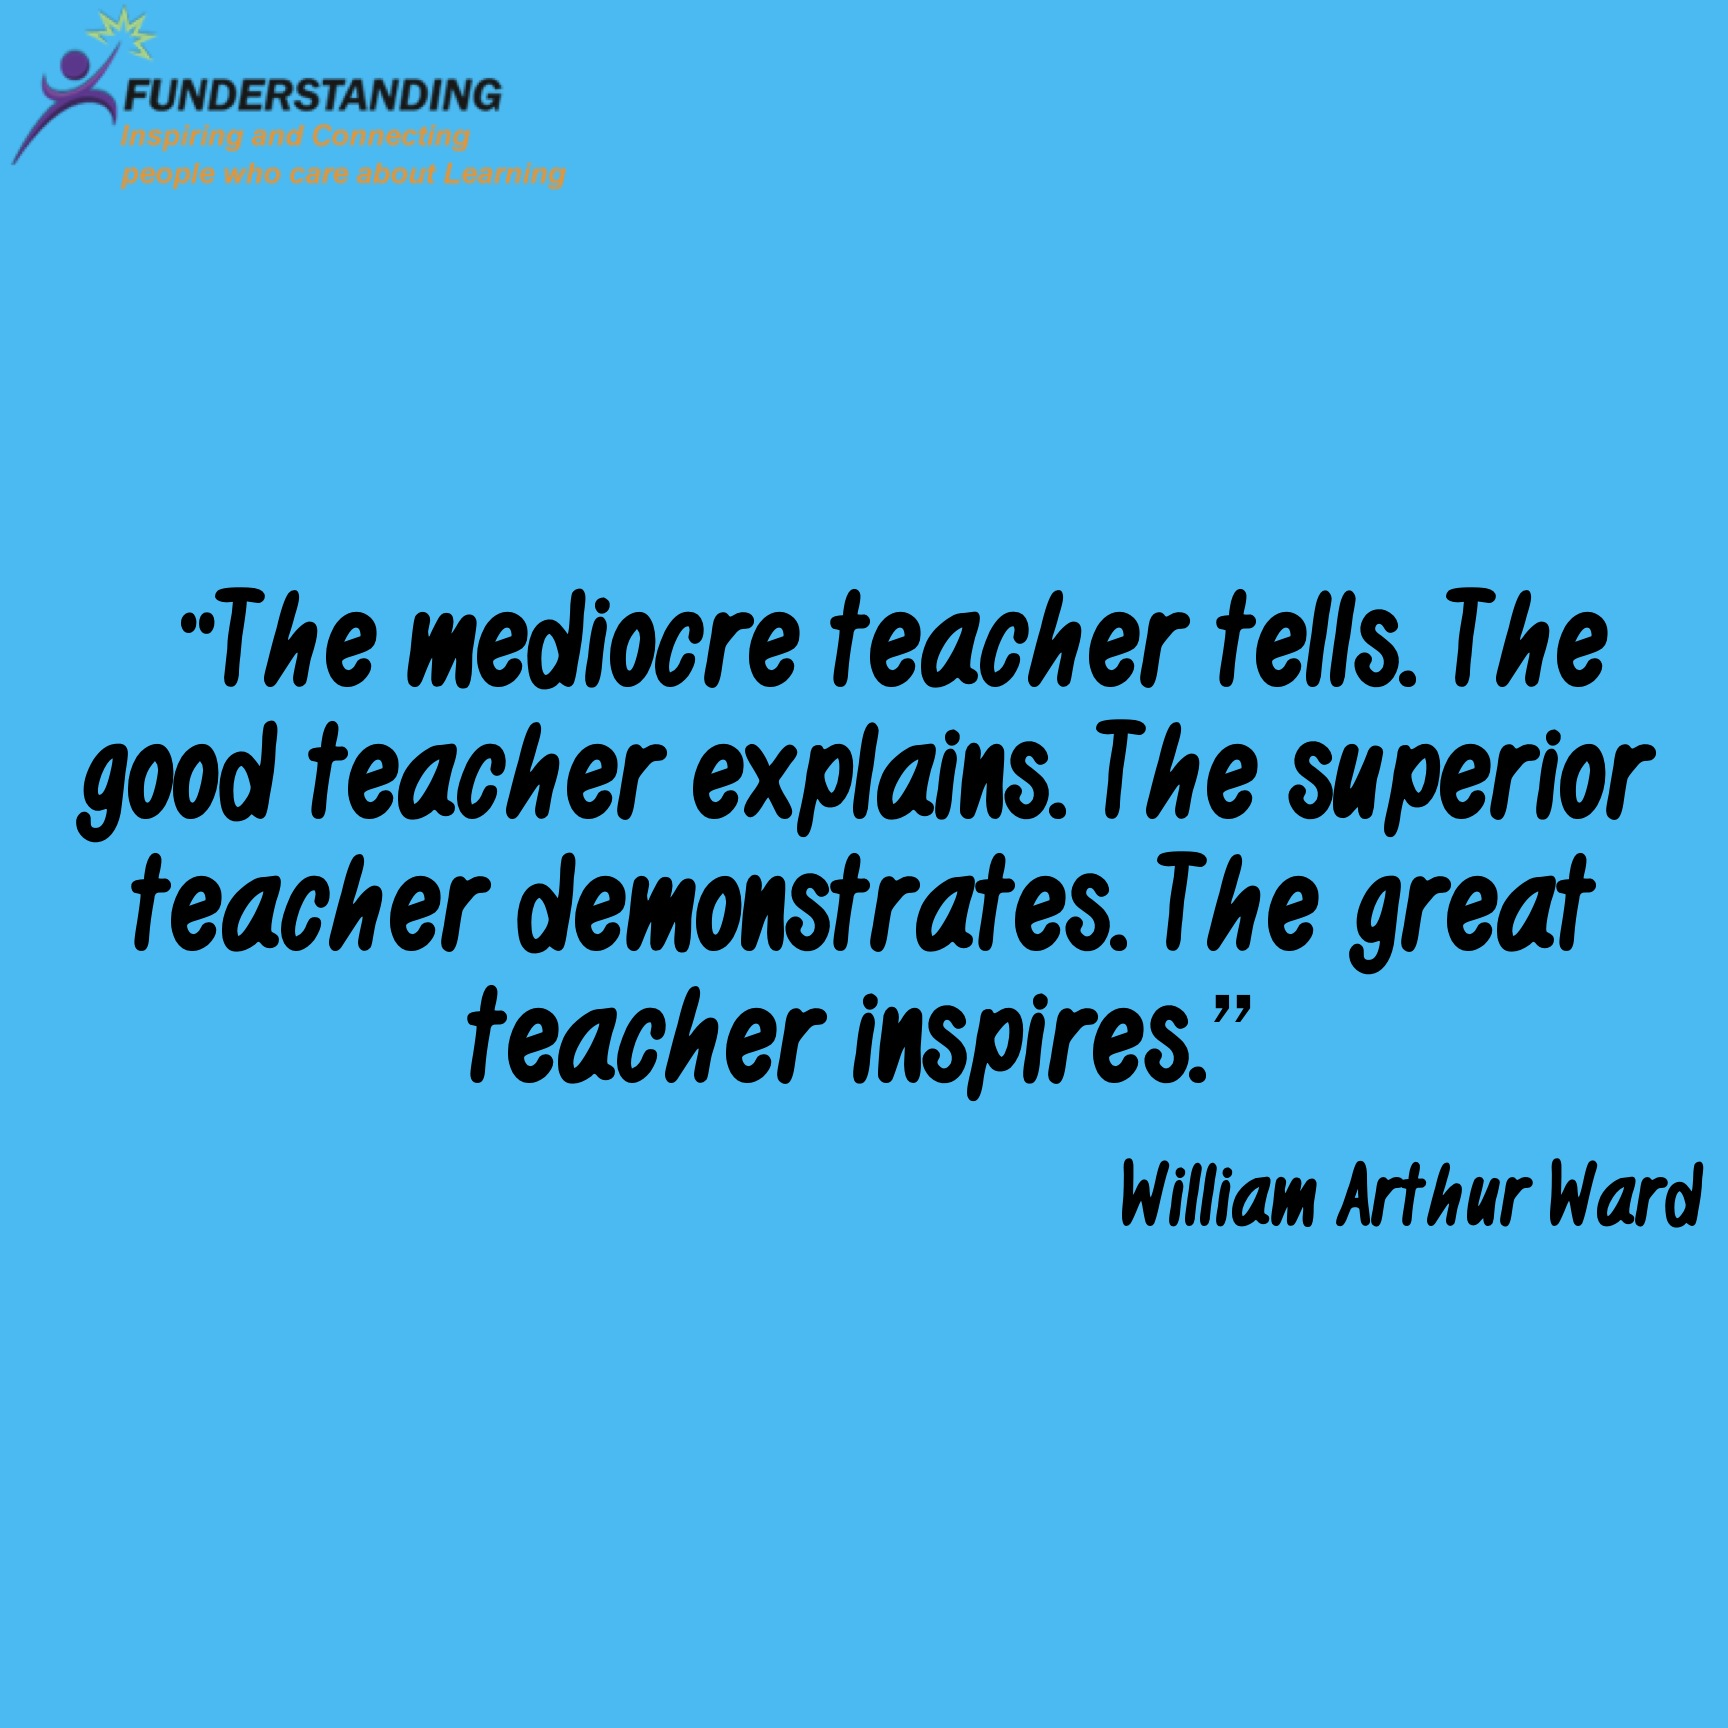 Quotation Of The Day Quoteoftheday48Funderstanding  Funderstanding Education